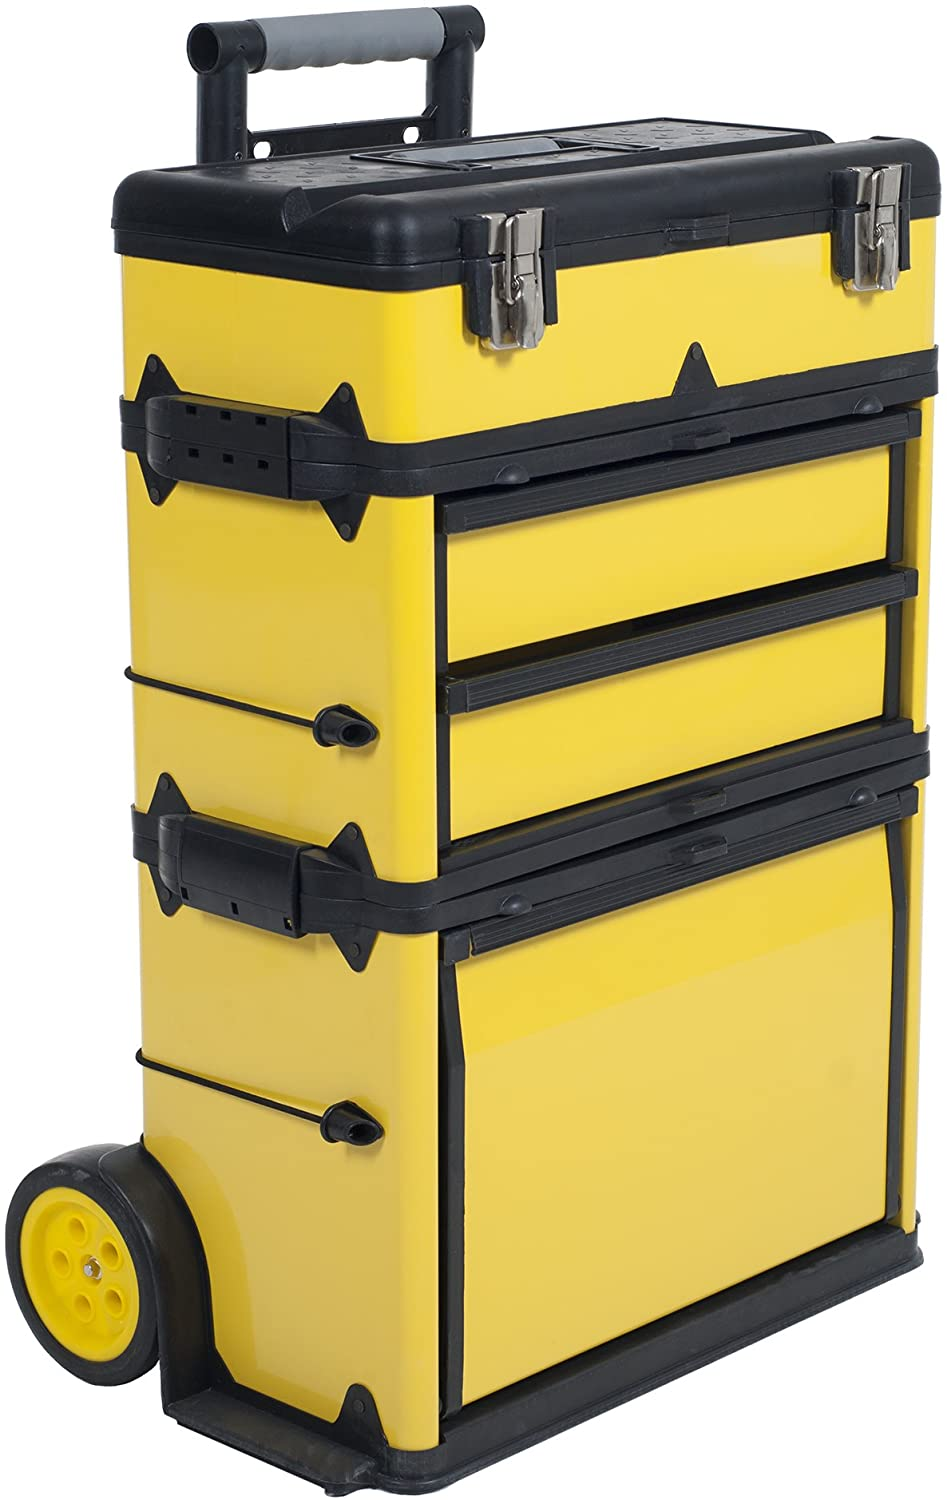 Stackable Toolbox Rolling Mobile Organizer with Telescopic Comfort Grip  Handle – Upright Rigid Pack Out Cart with Wheels and Drawers by Stalwart -  - Amazon.com